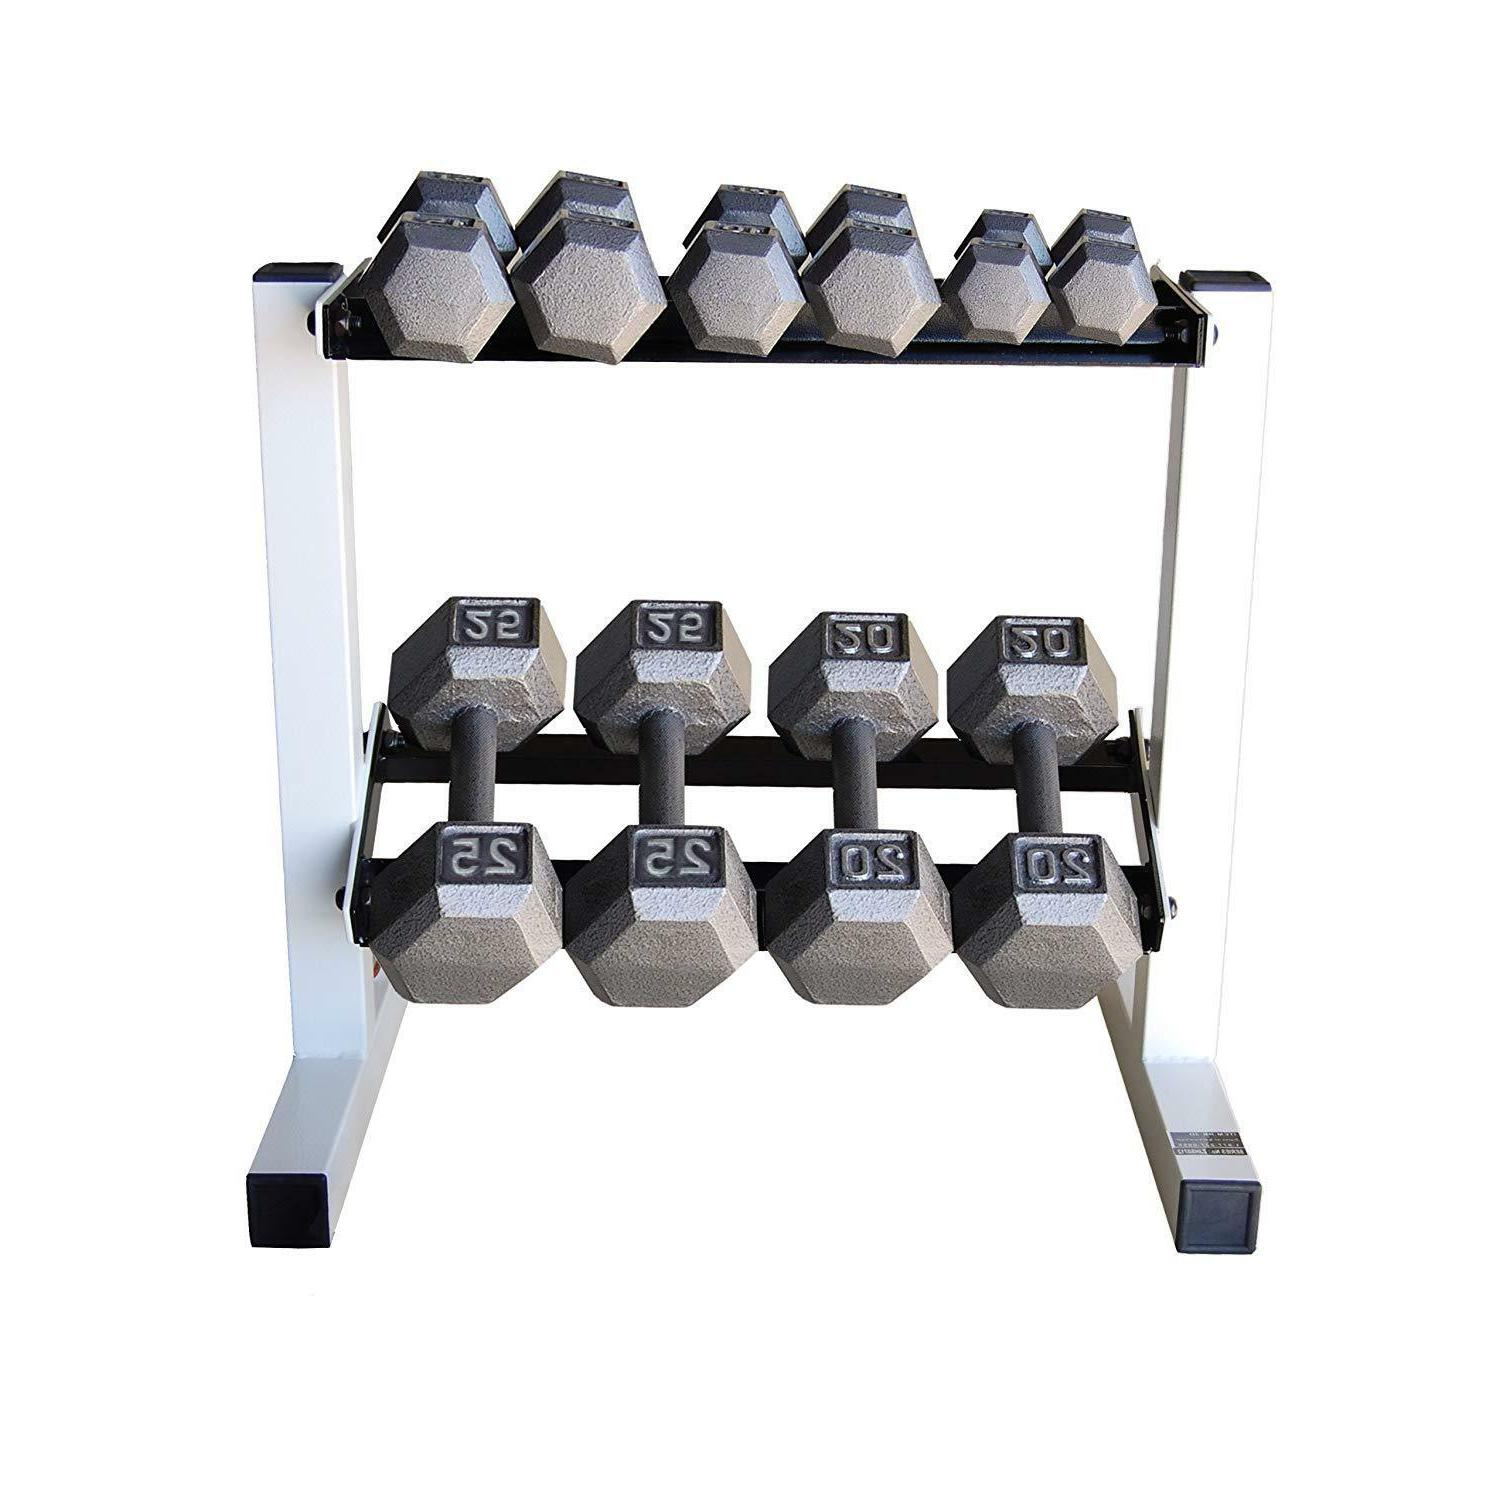 150 LB Weight Dumbbell Set With Rack Stand Gym Exercise Musc